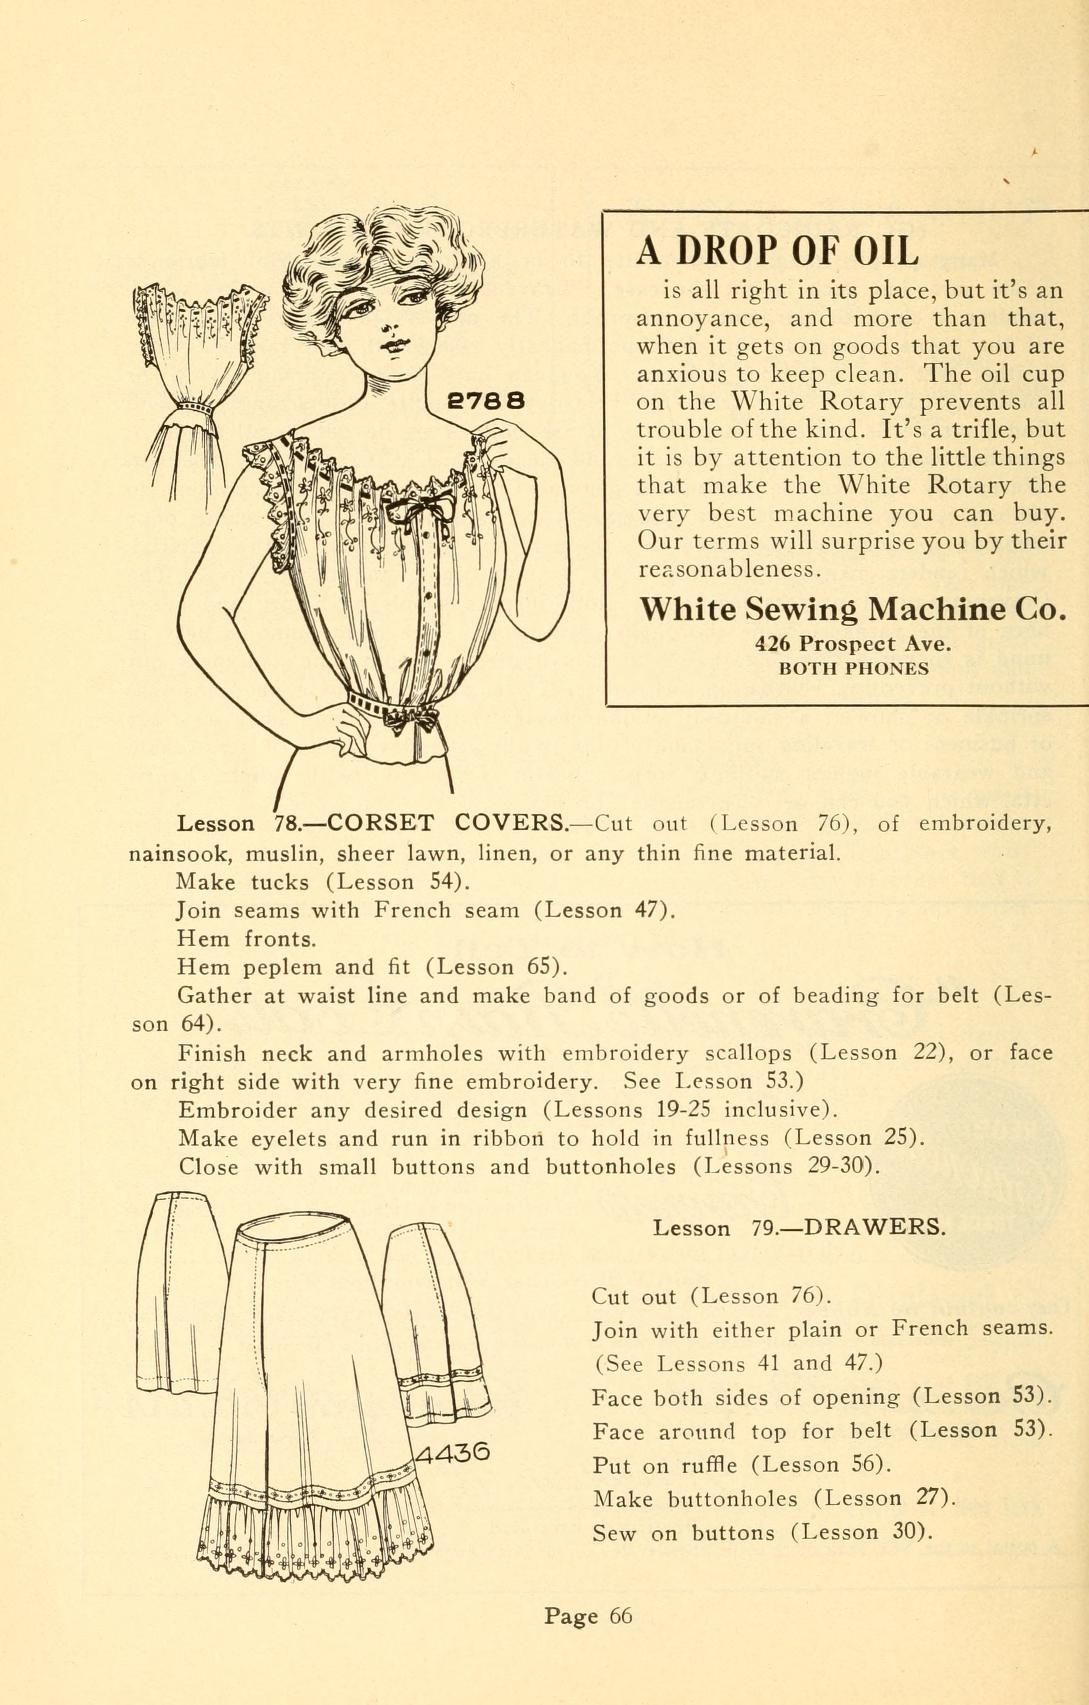 1912 Coates sewing and dress making manual -- corset covers and drawers